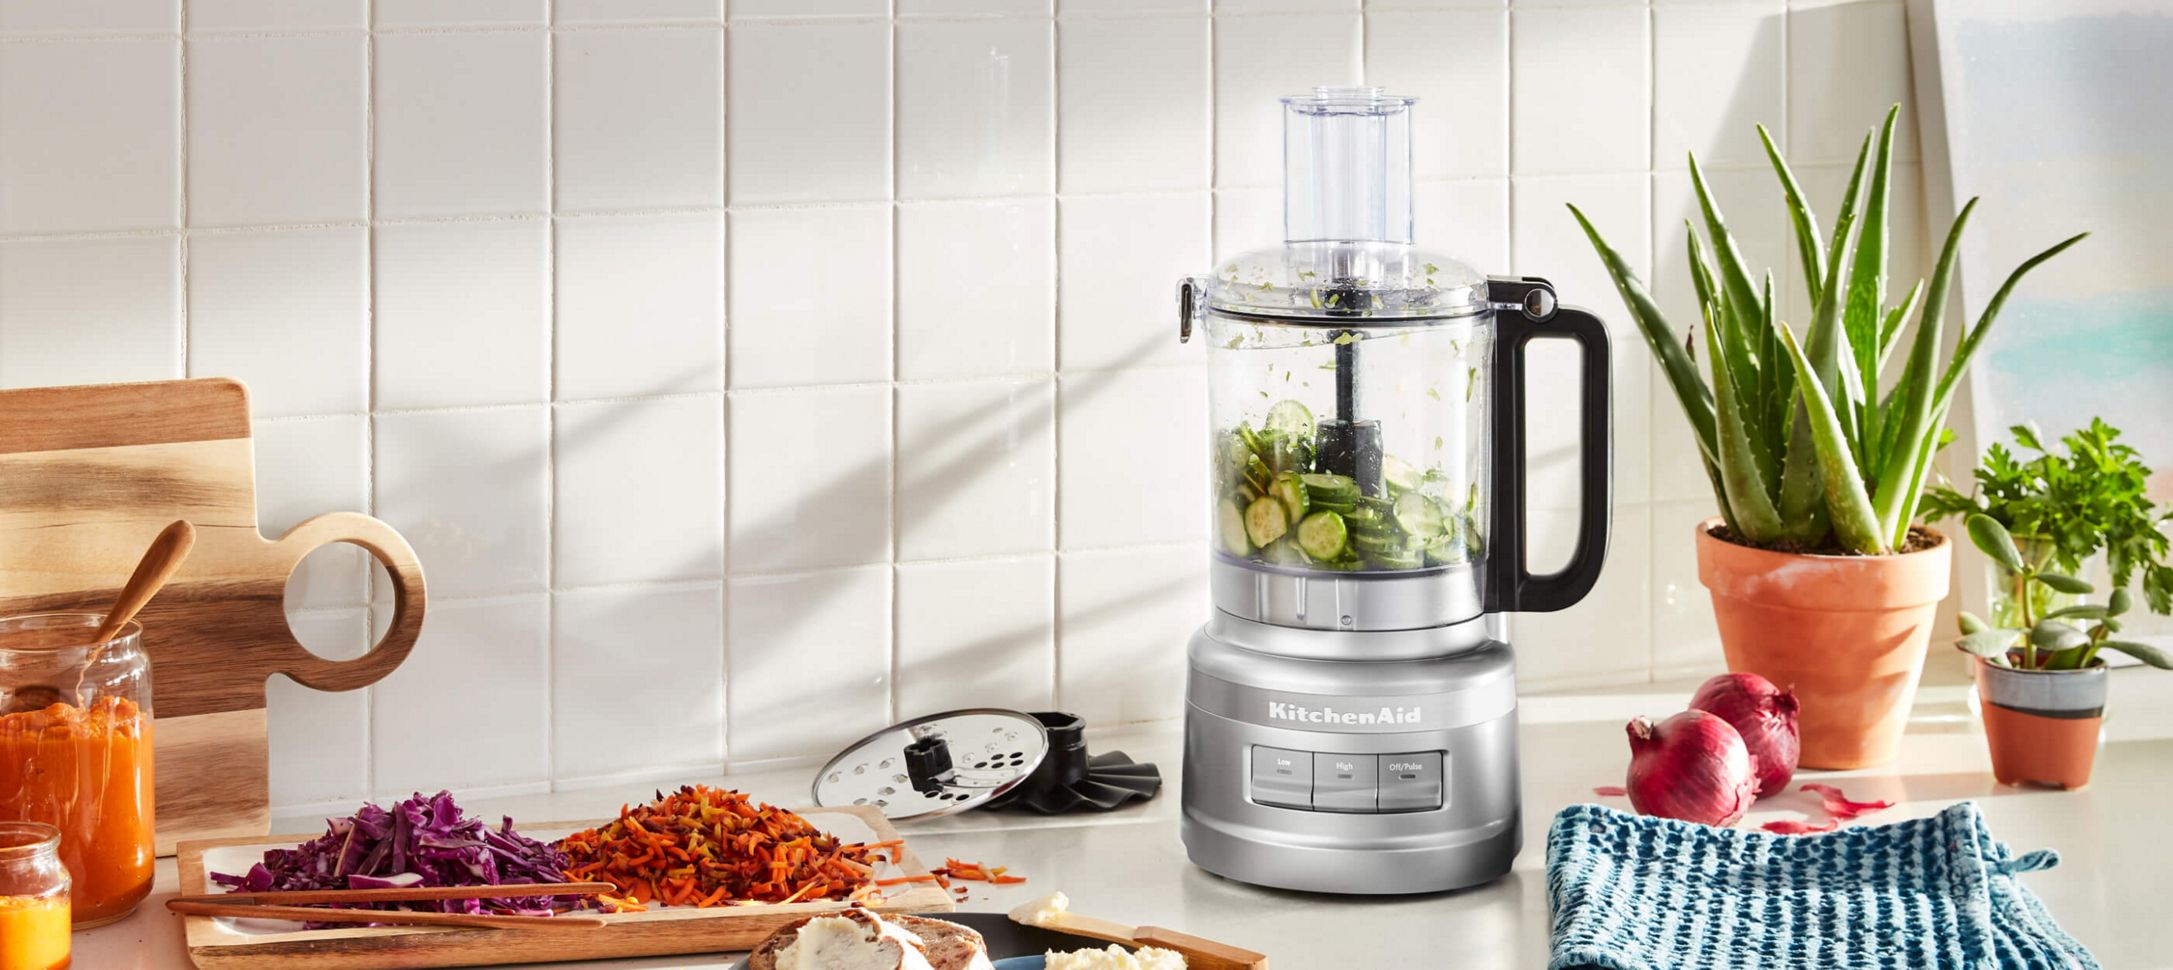 A Contour Silver 9 Cup Food Processor holding sliced cucumber.